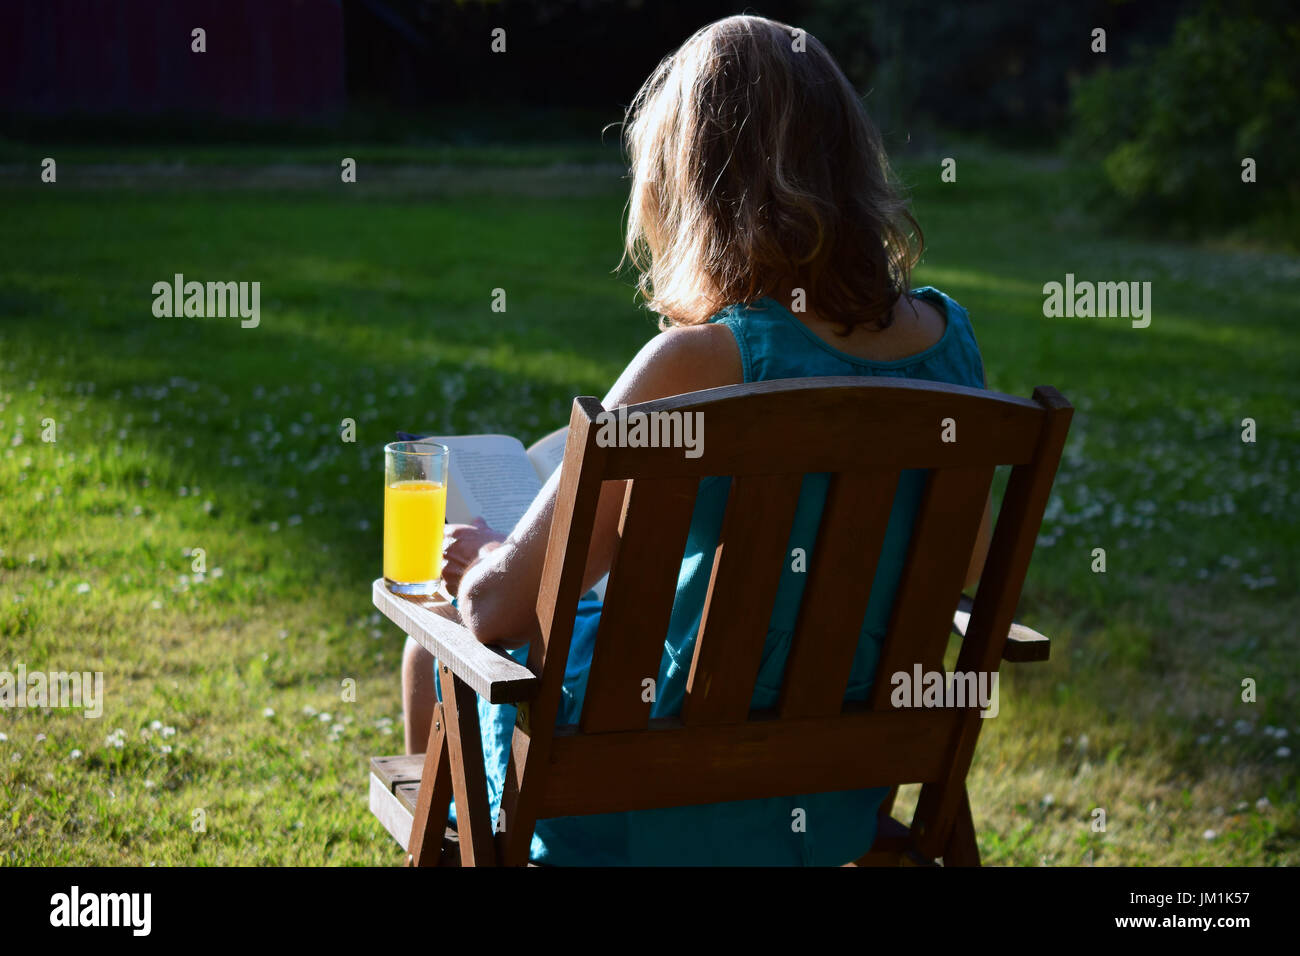 Woman enjoying reading a book and yellow drink in a garden with last rays of evening sunlight on summer. - Stock Image